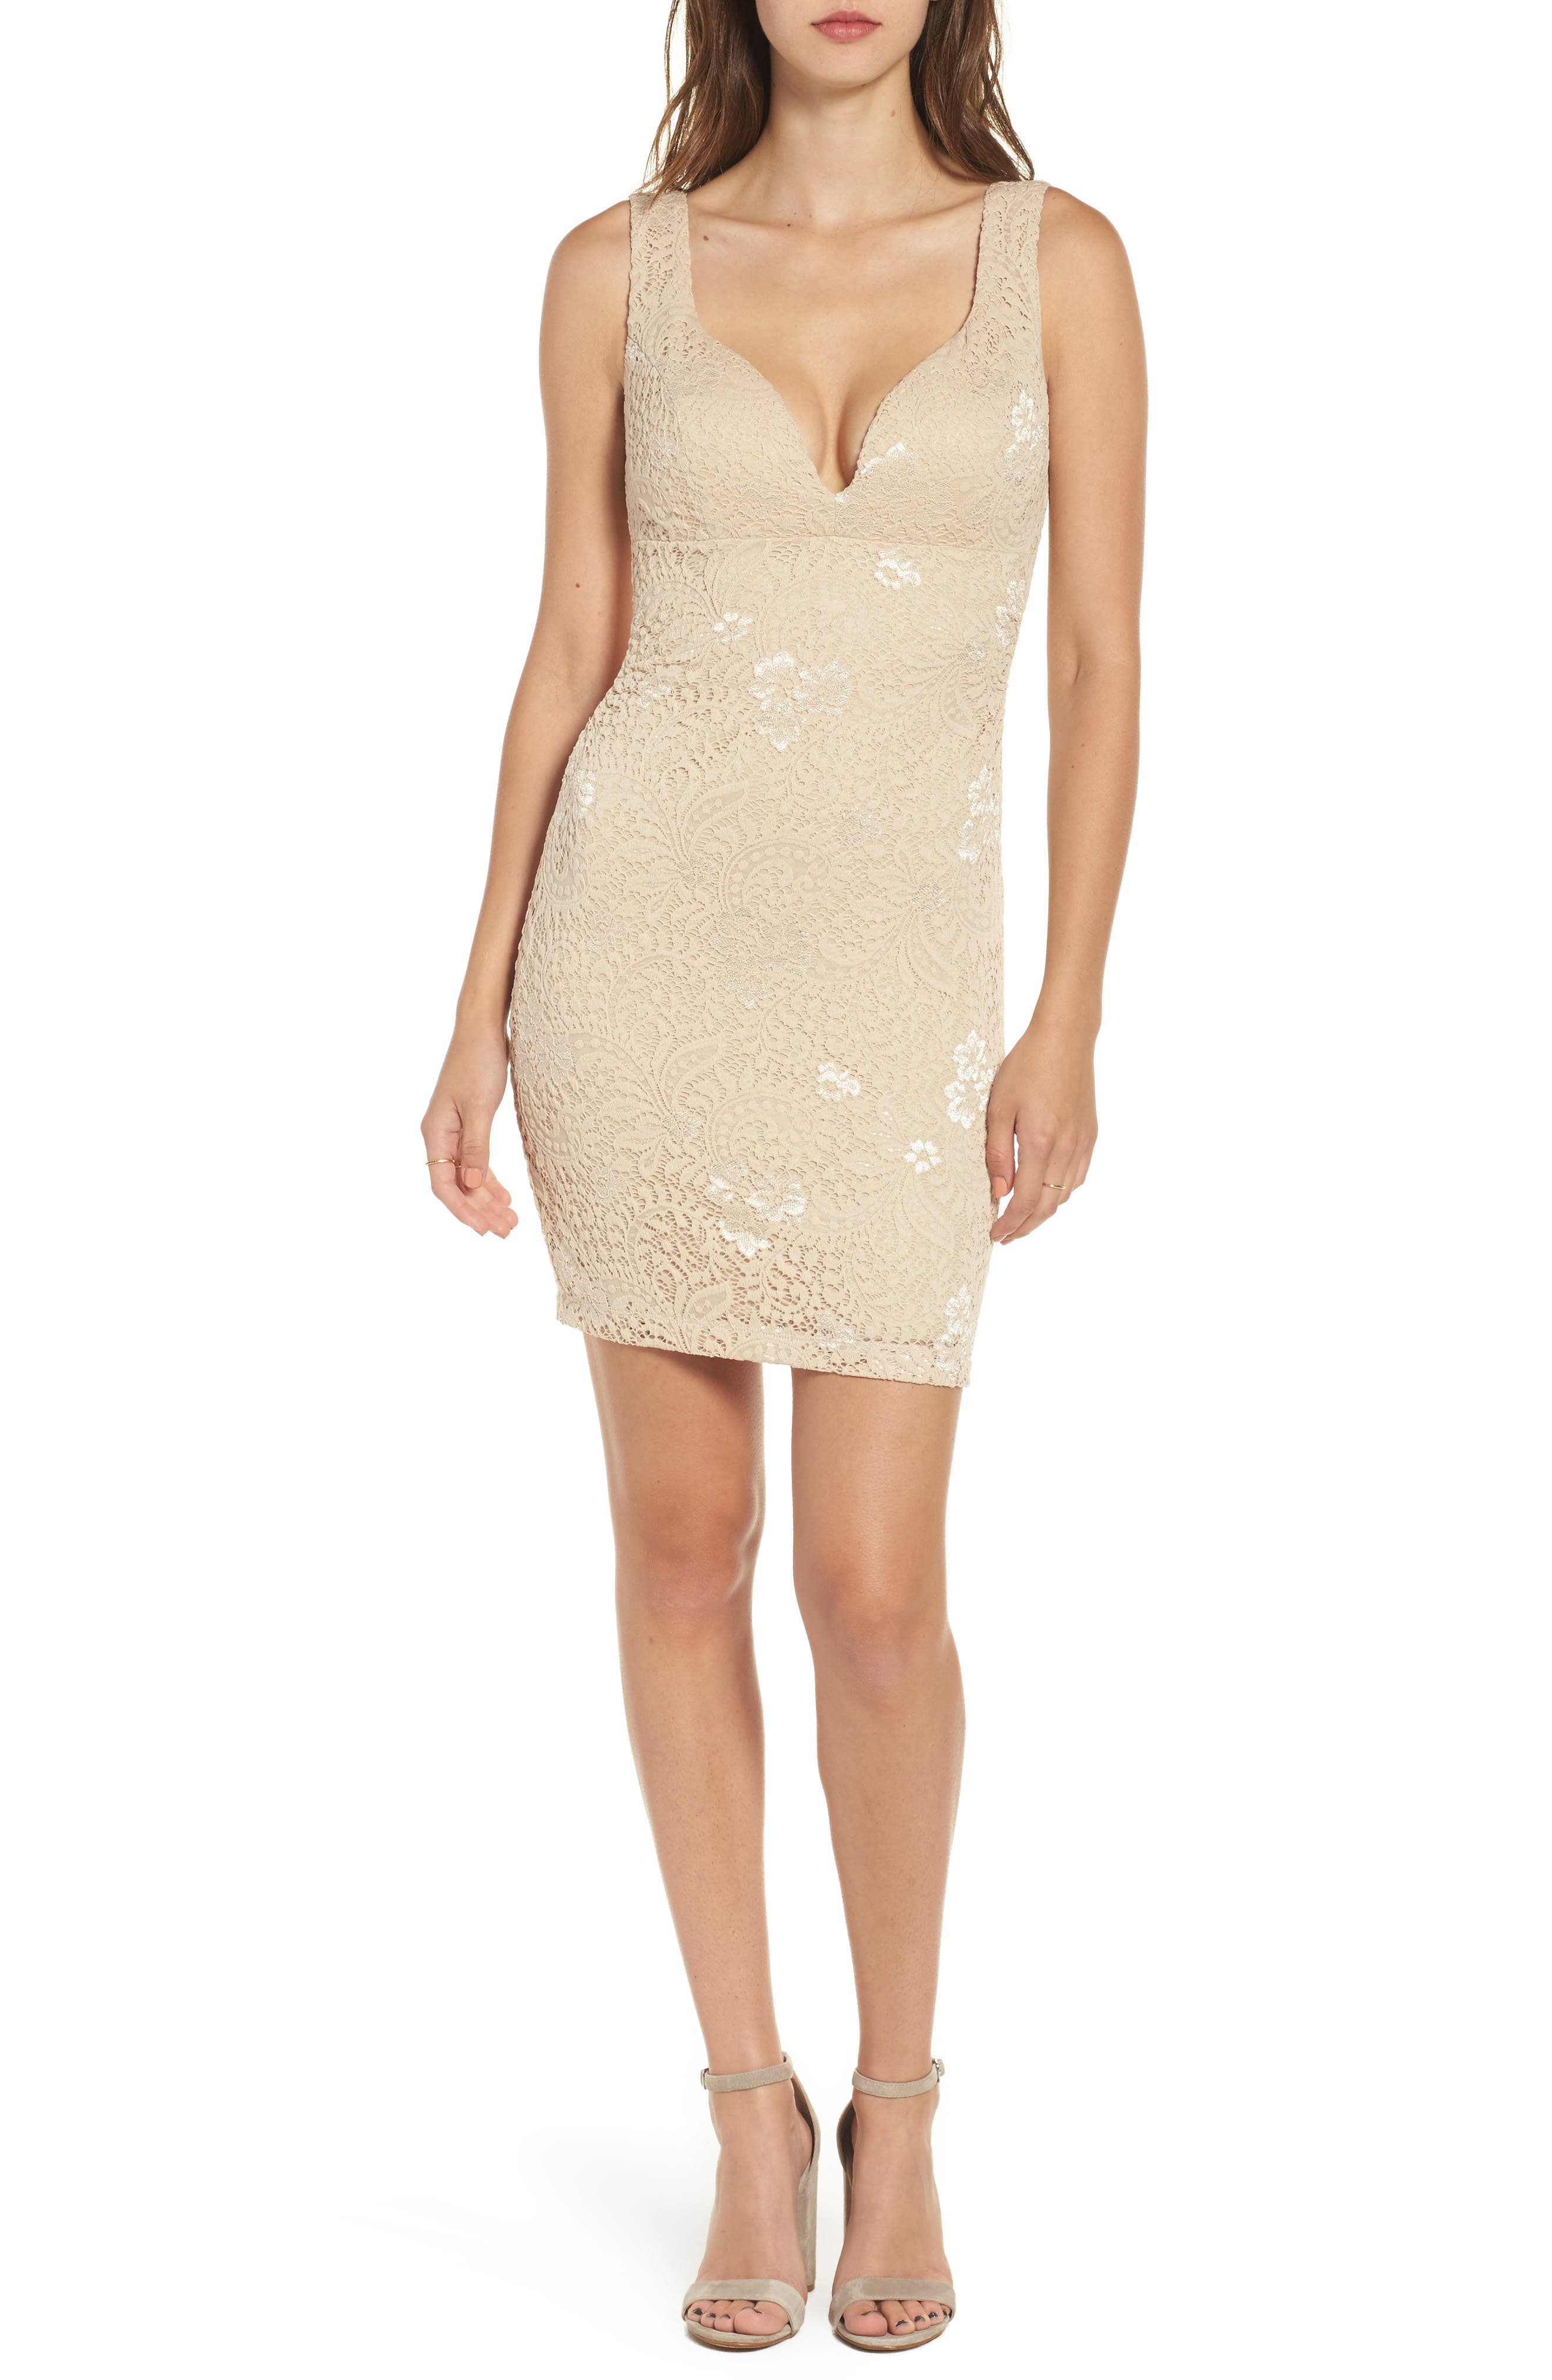 Alternate Image 1 Selected - Love Nickie Lew Lace Body Con Dress